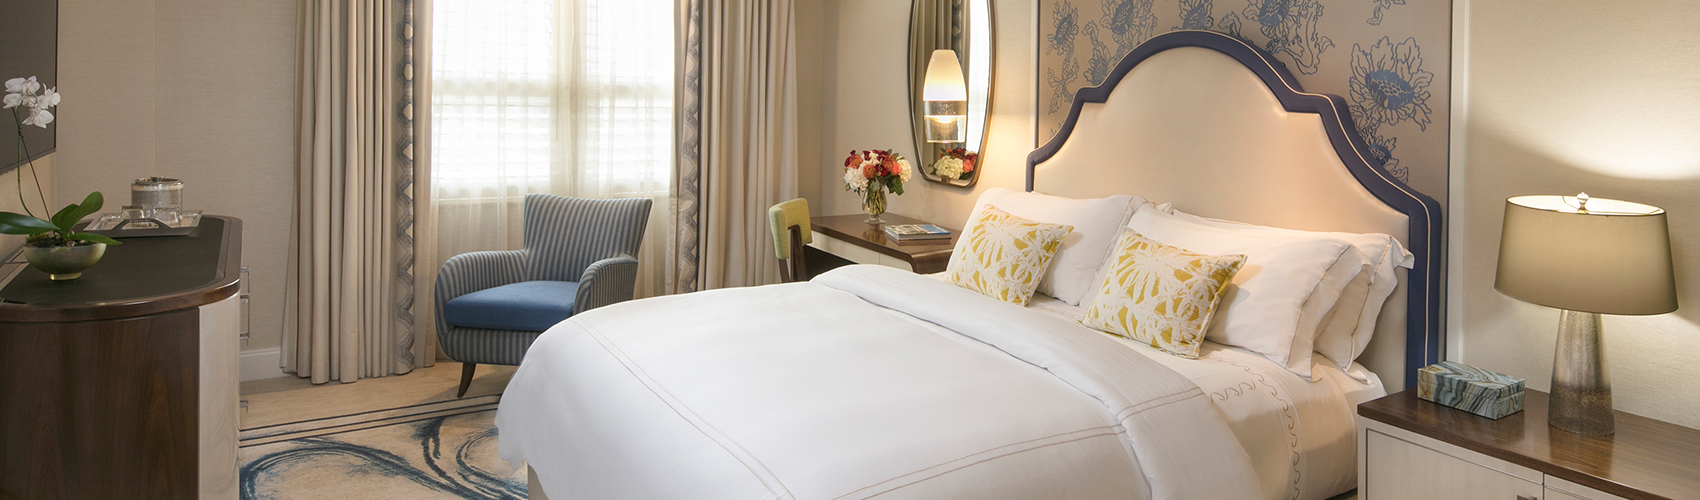 Deluxe Guest Room with Resort View and King Bed